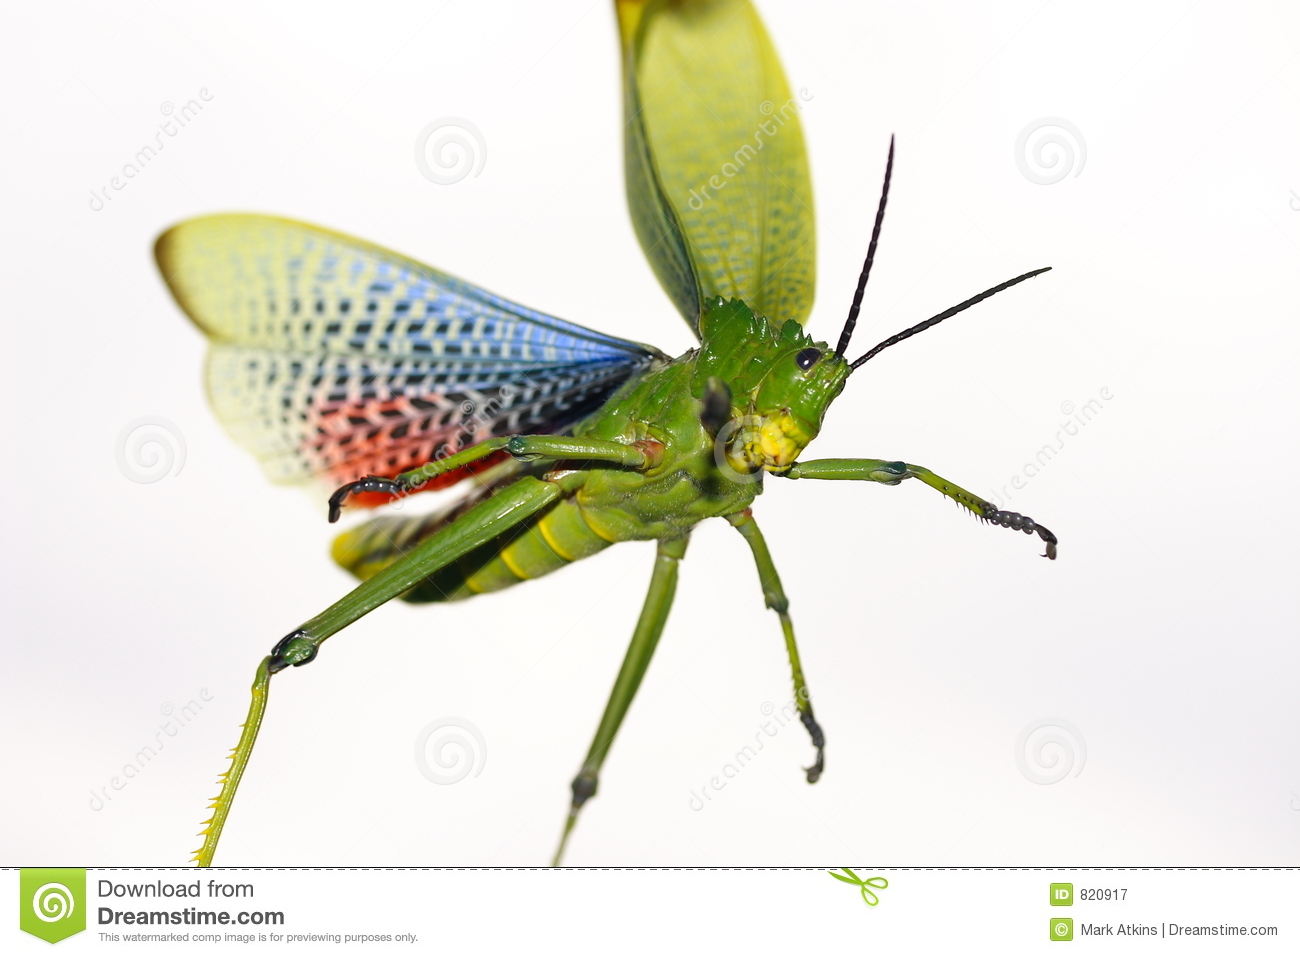 Groen eng insect